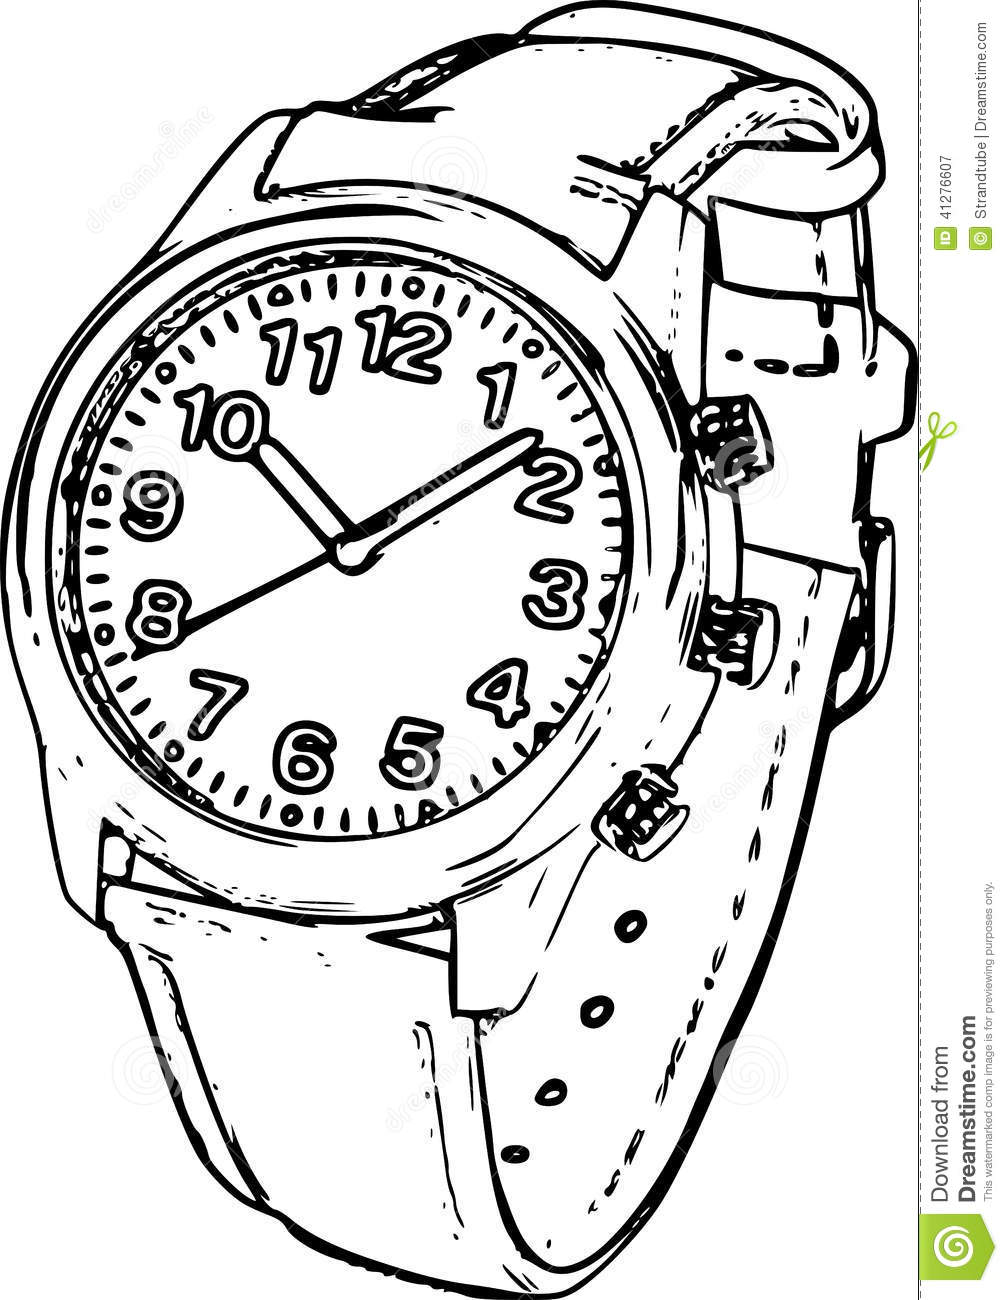 Royalty Free Stock Photography  Wrist Watch Sketch  Image  41276607